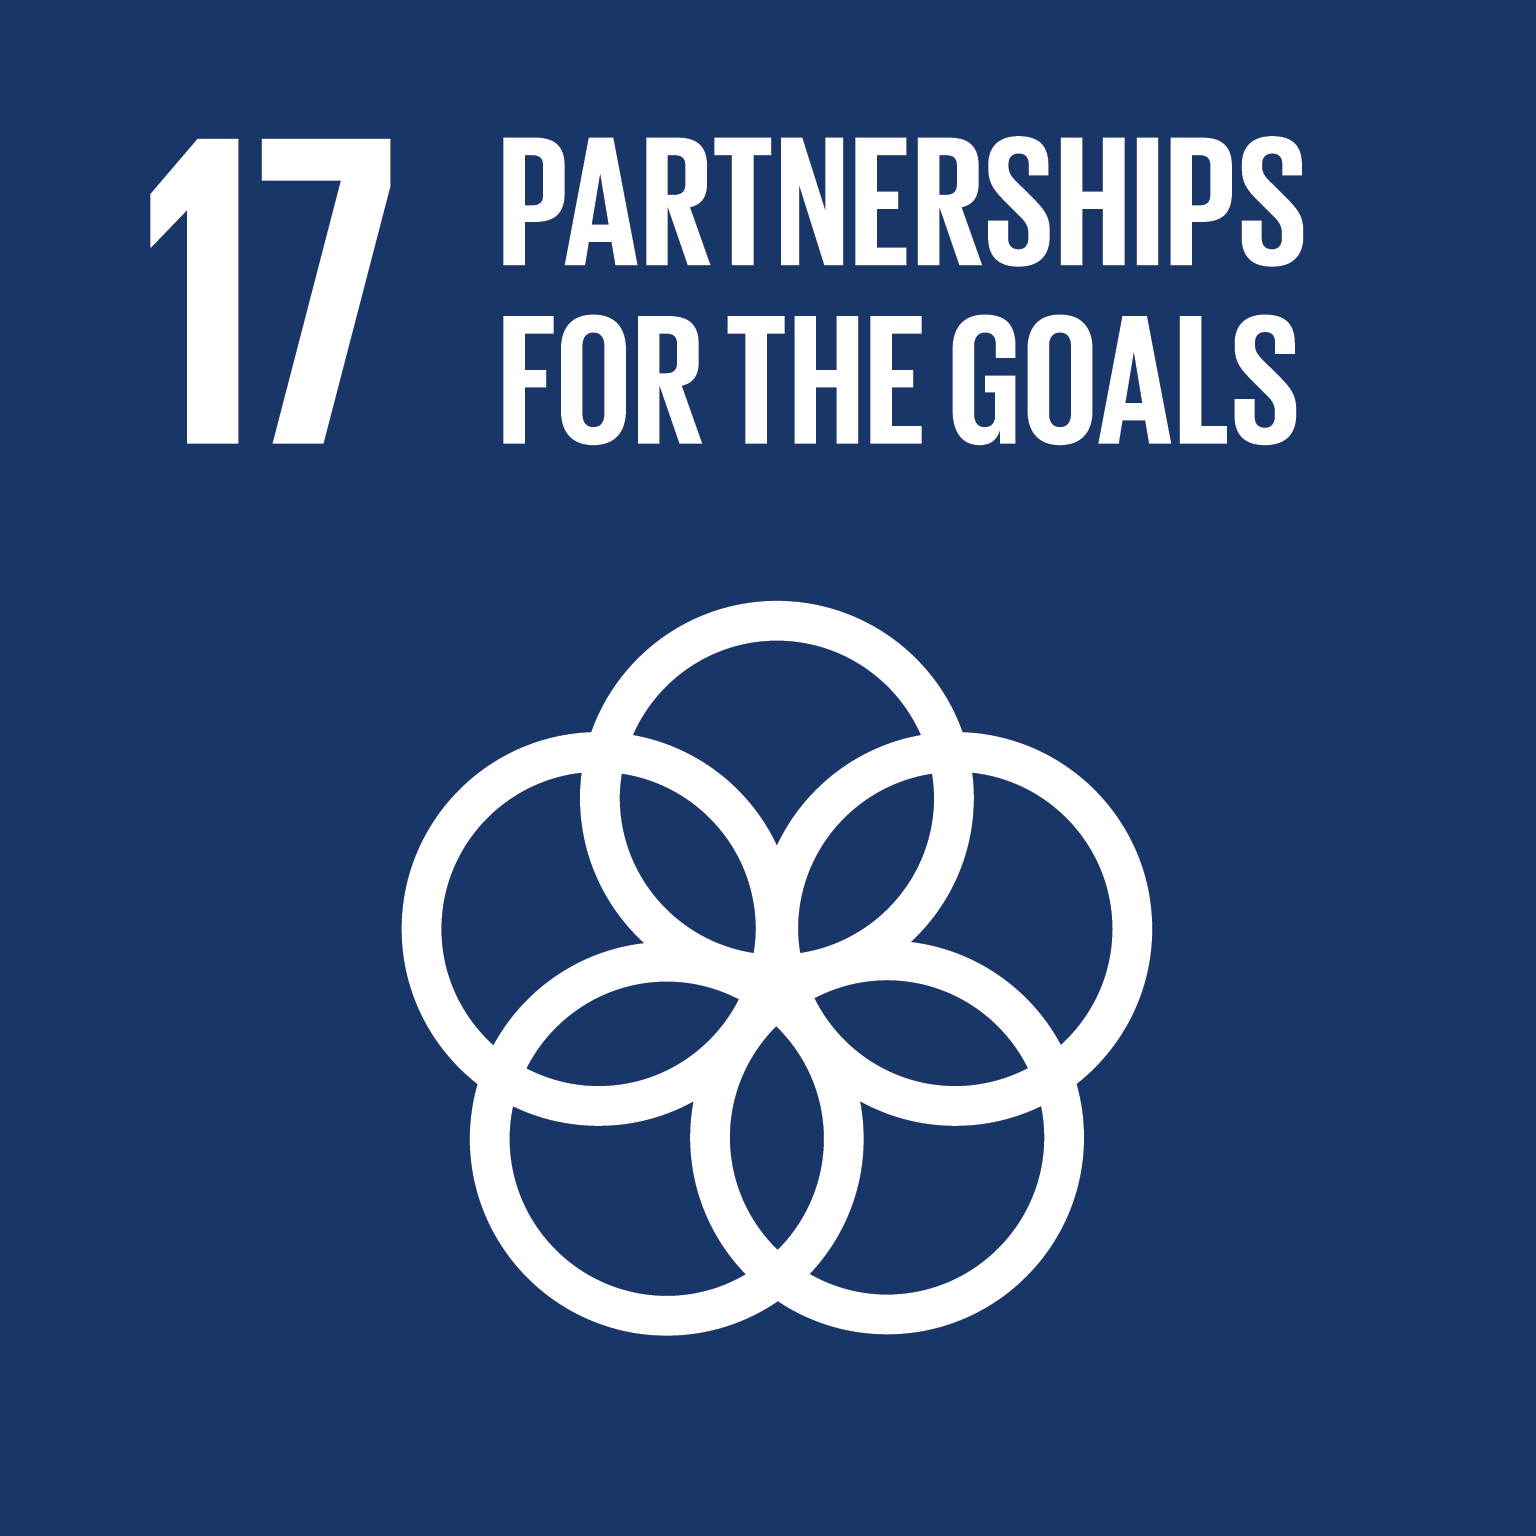 Goal 17: Partnership for the Goals